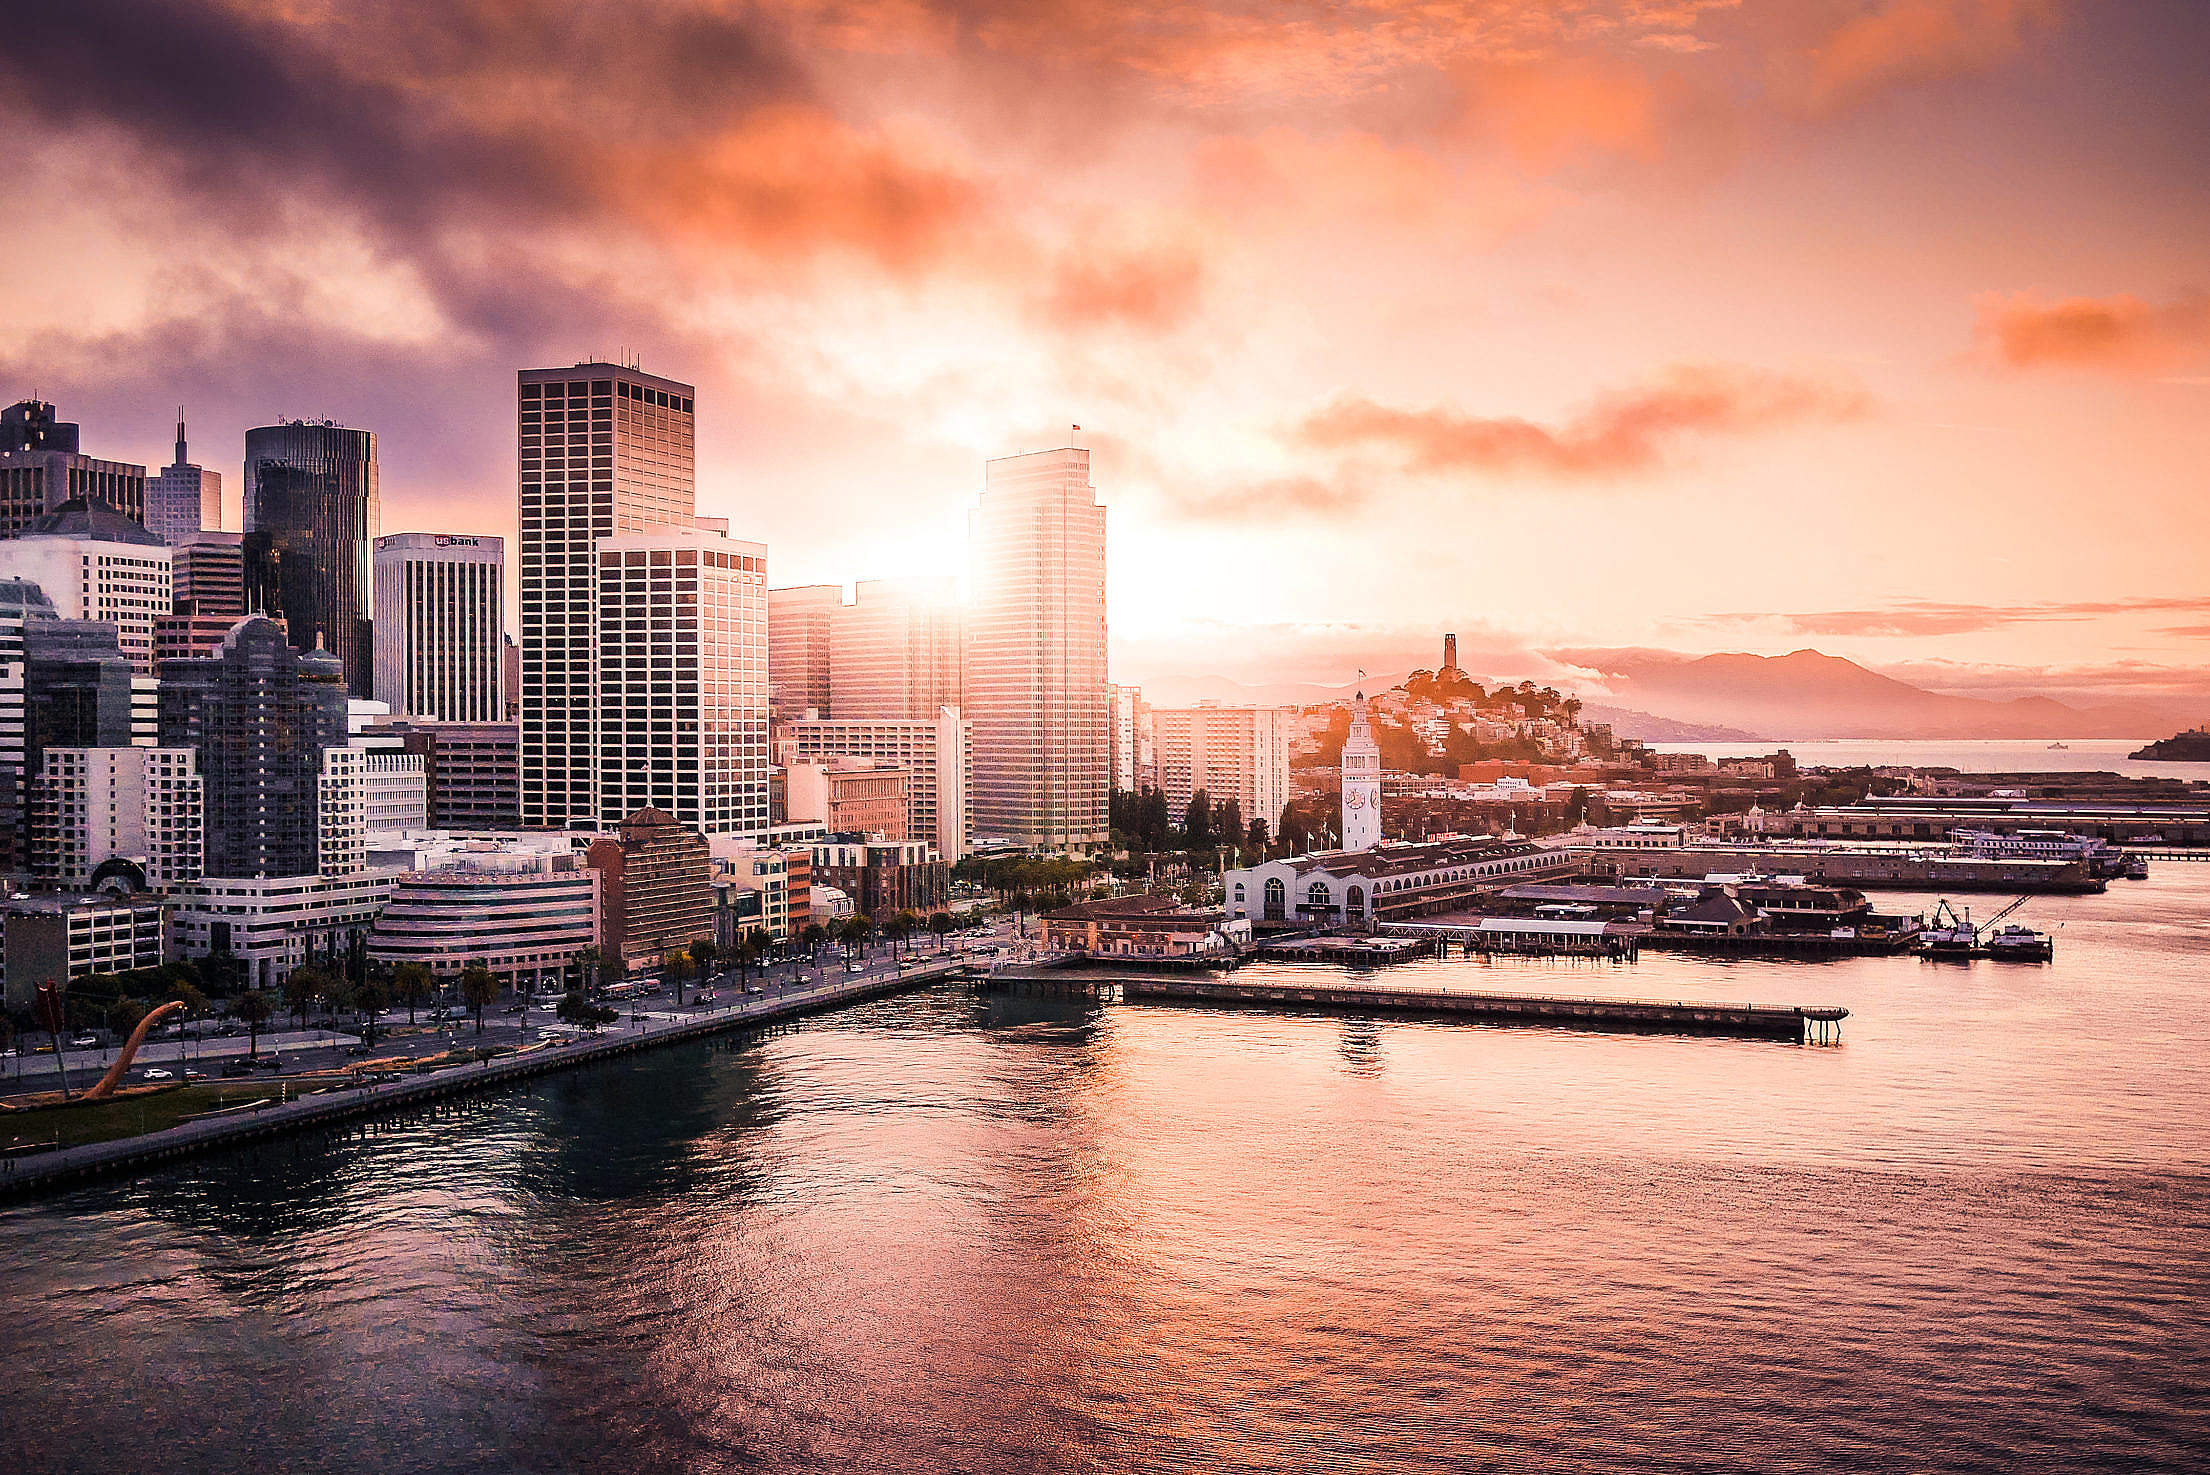 San Franciso Financial District Shore Evening Sunset Free Stock Photo